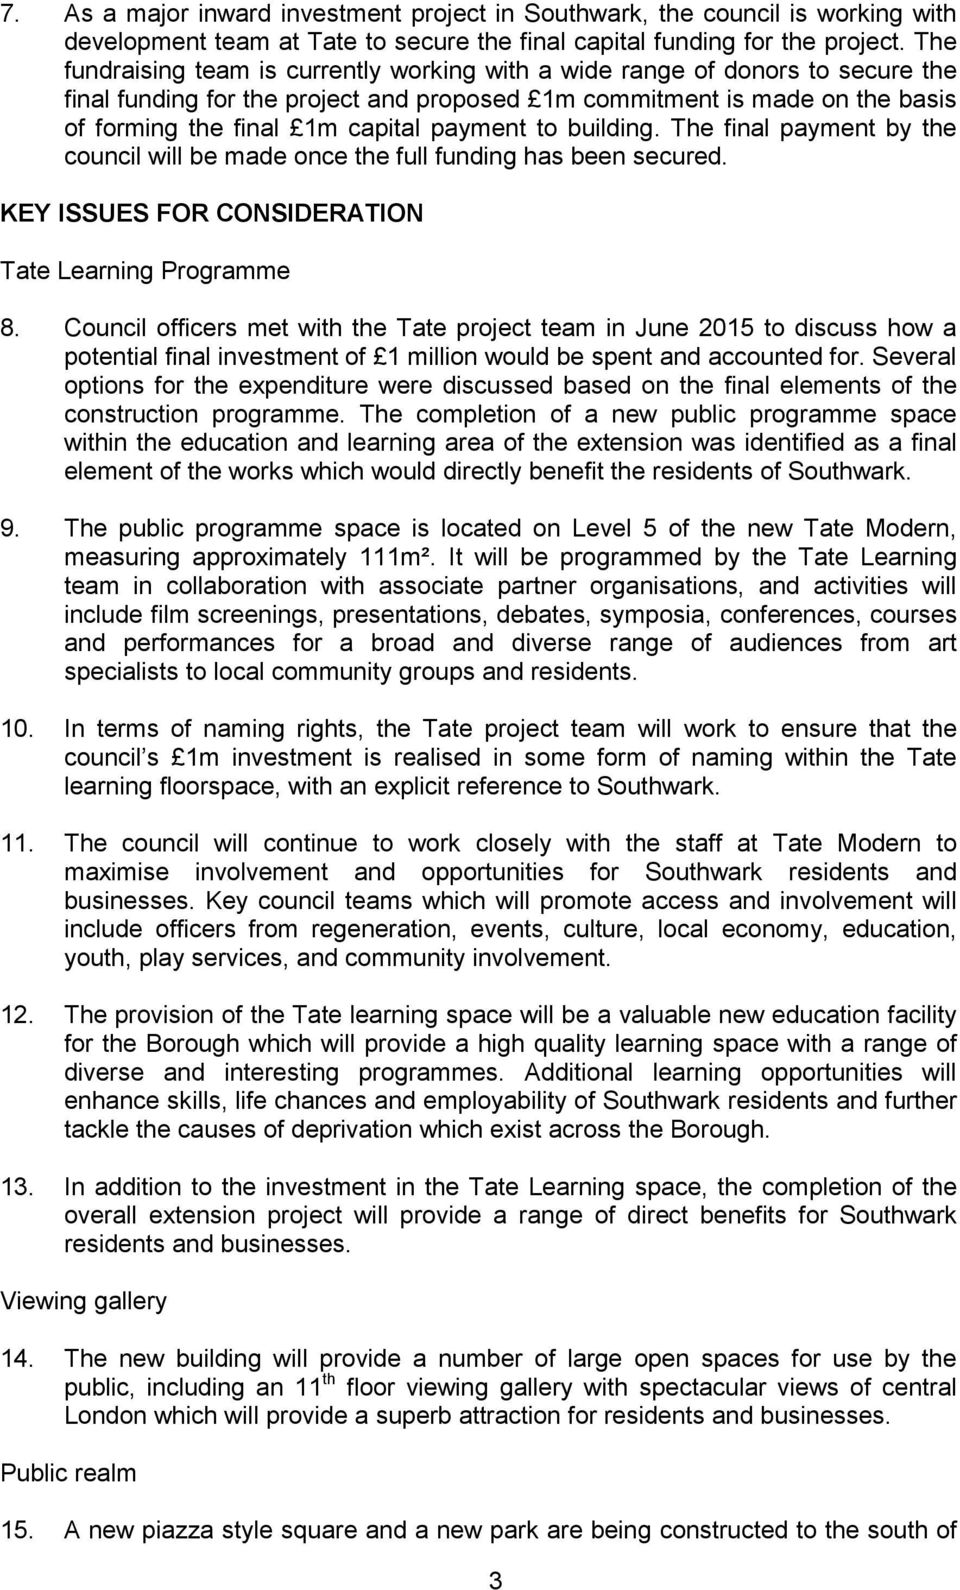 payment to building. The final payment by the council will be made once the full funding has been secured. KEY ISSUES FOR CONSIDERATION Tate Learning Programme 8.